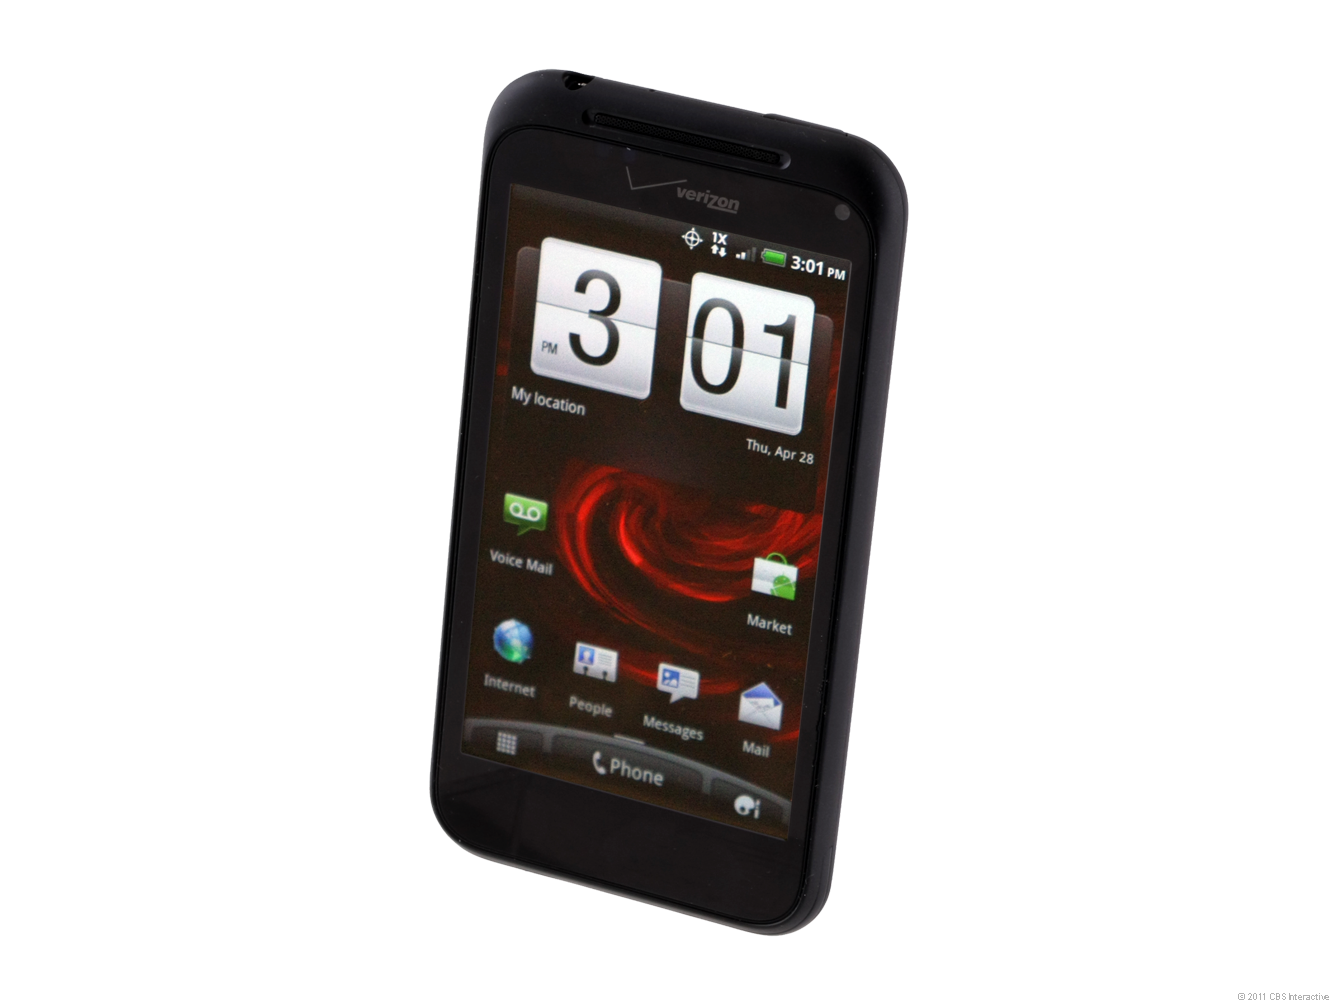 HTC Droid Incredible 2 (Verizon Wireless)